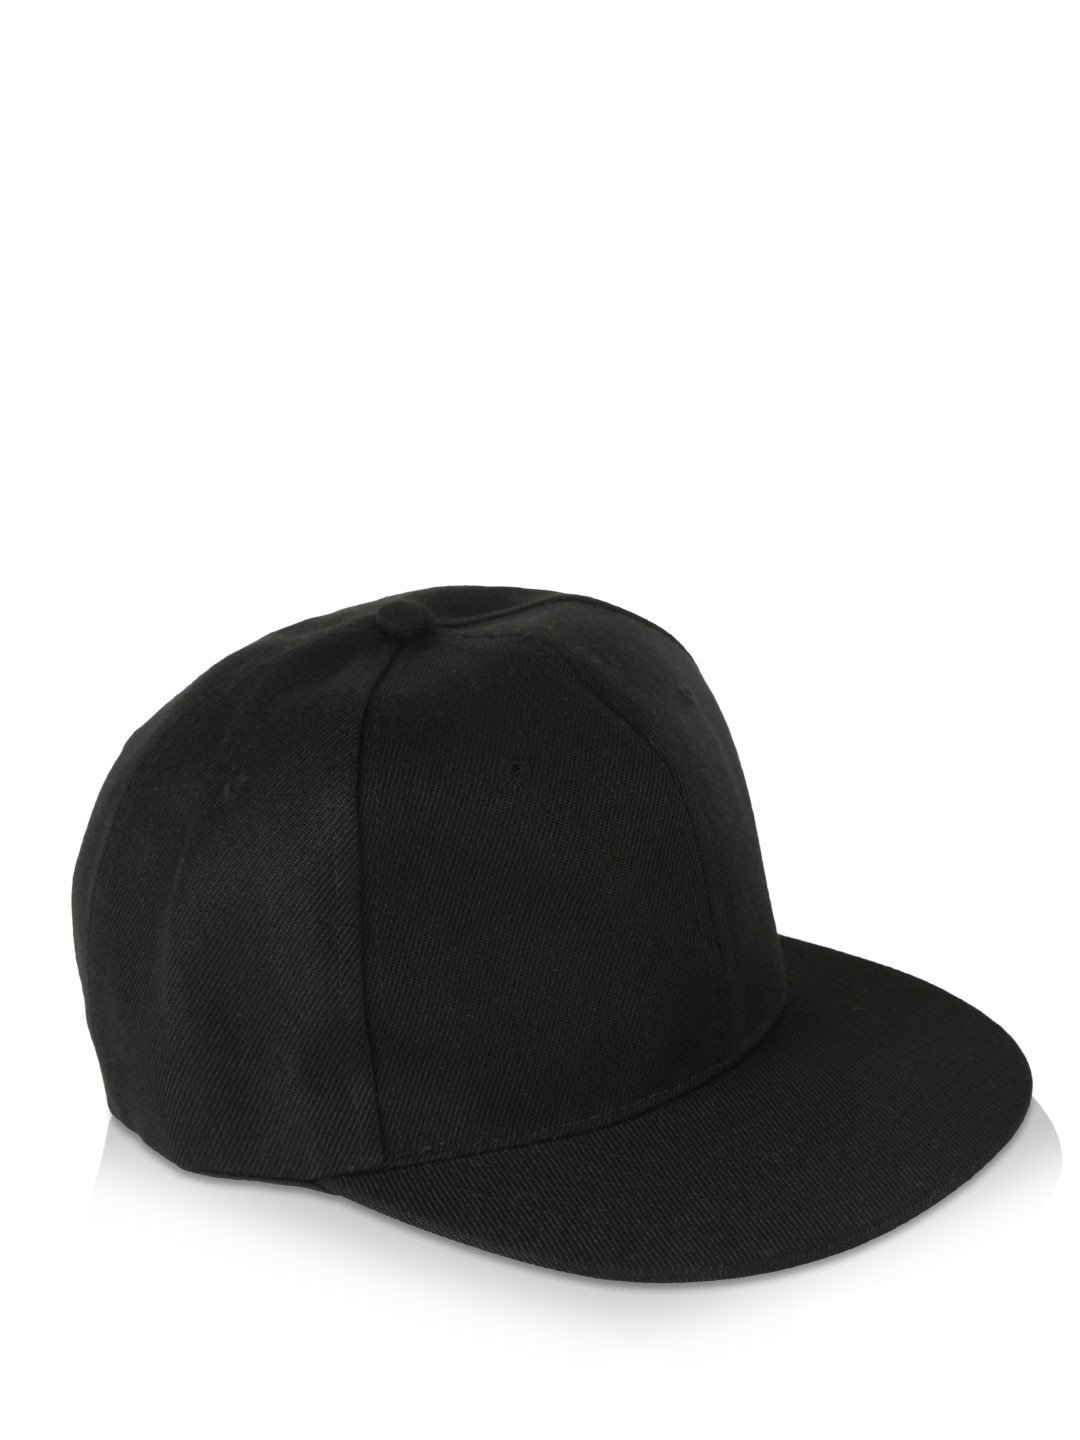 8091335b9ff Huntsman Era Men S Baseball Cap (Black Plain Hiphop Black Medium) product  image